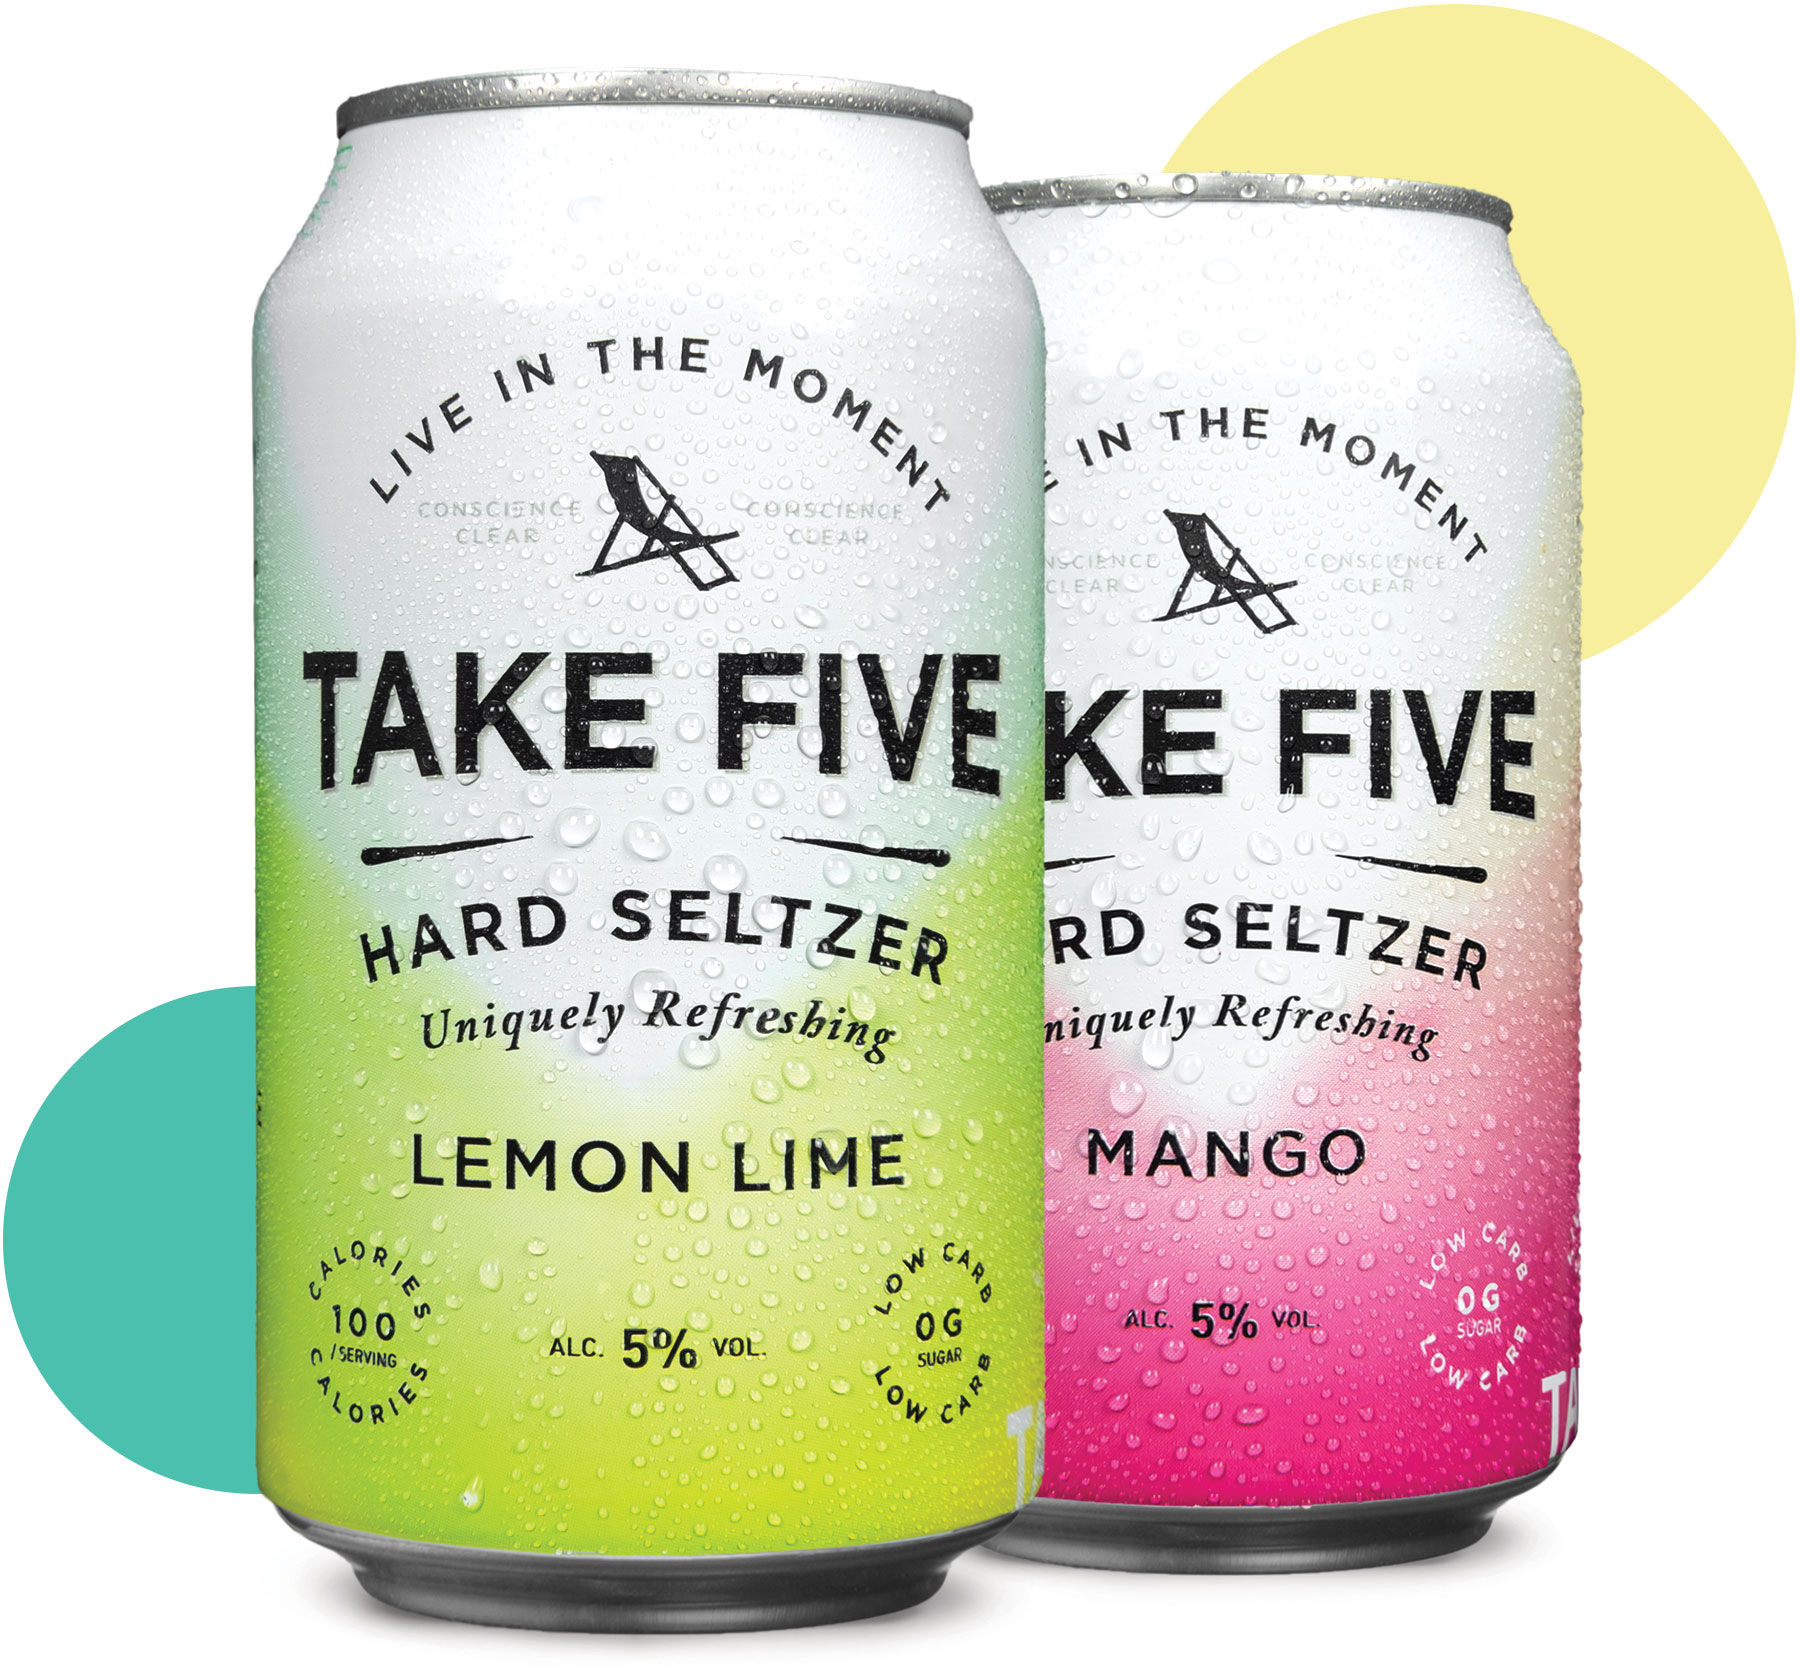 TAKE FIVE cans